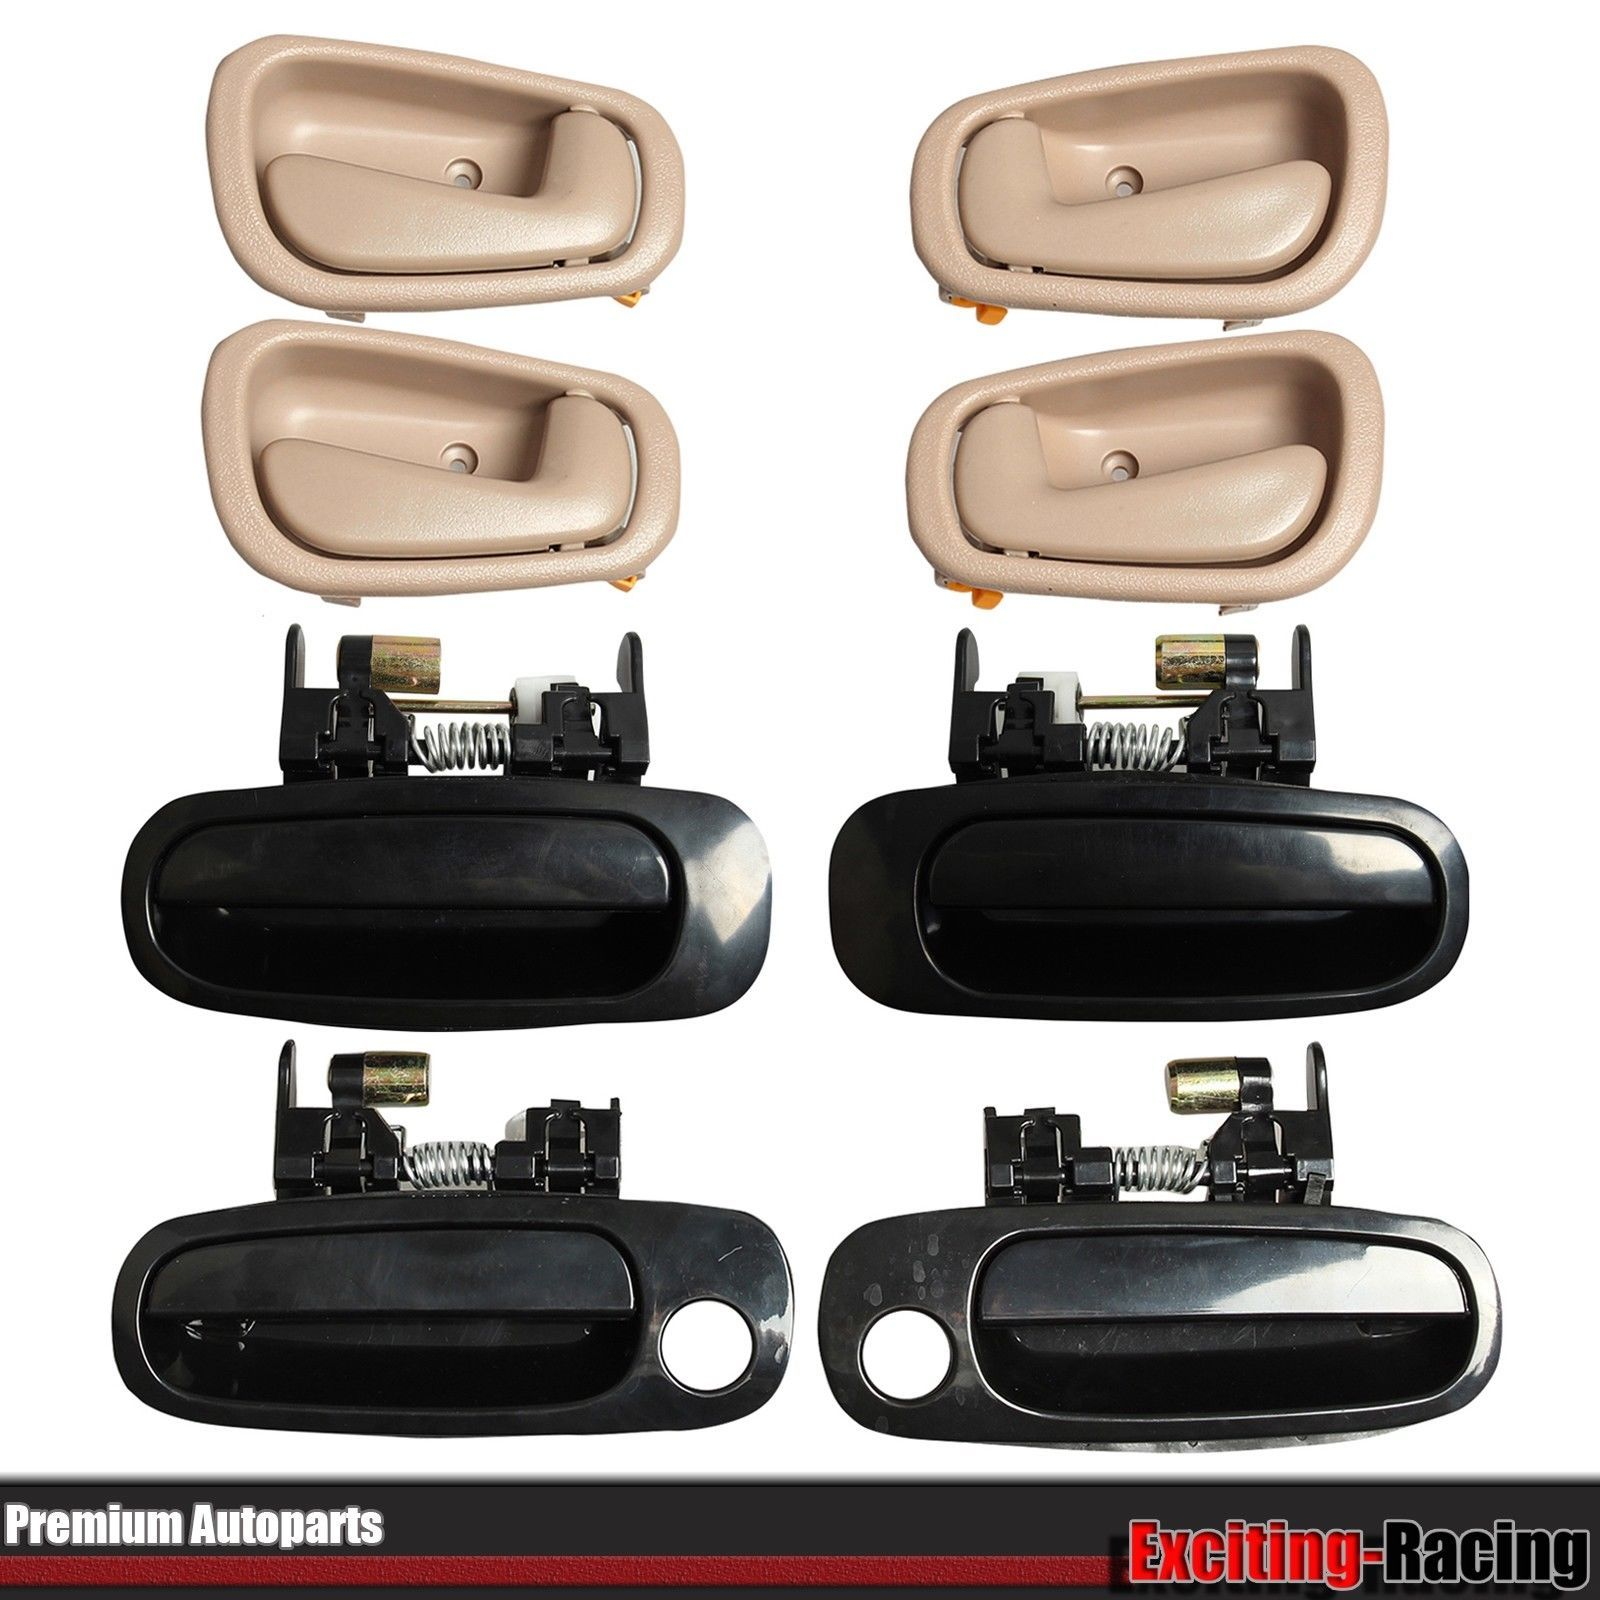 Awesome Great Black Outside Beige Inside Door Handle For 1998 2002 Toyota Corolla Set Of 8 Pcs 2018